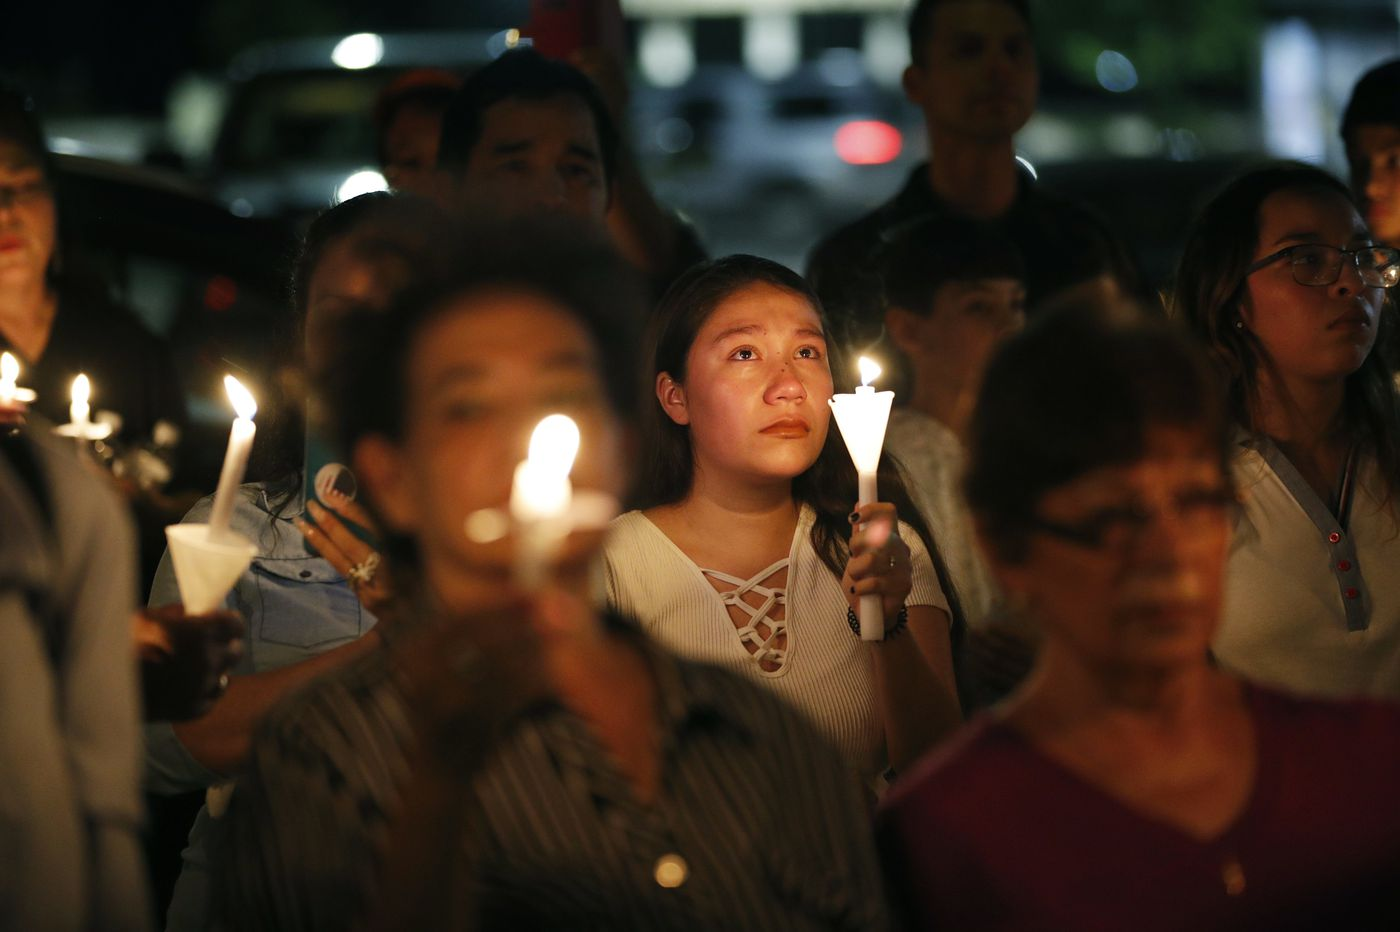 Could El Paso be another Birmingham and turn around anti-Latino hate? | Opinion